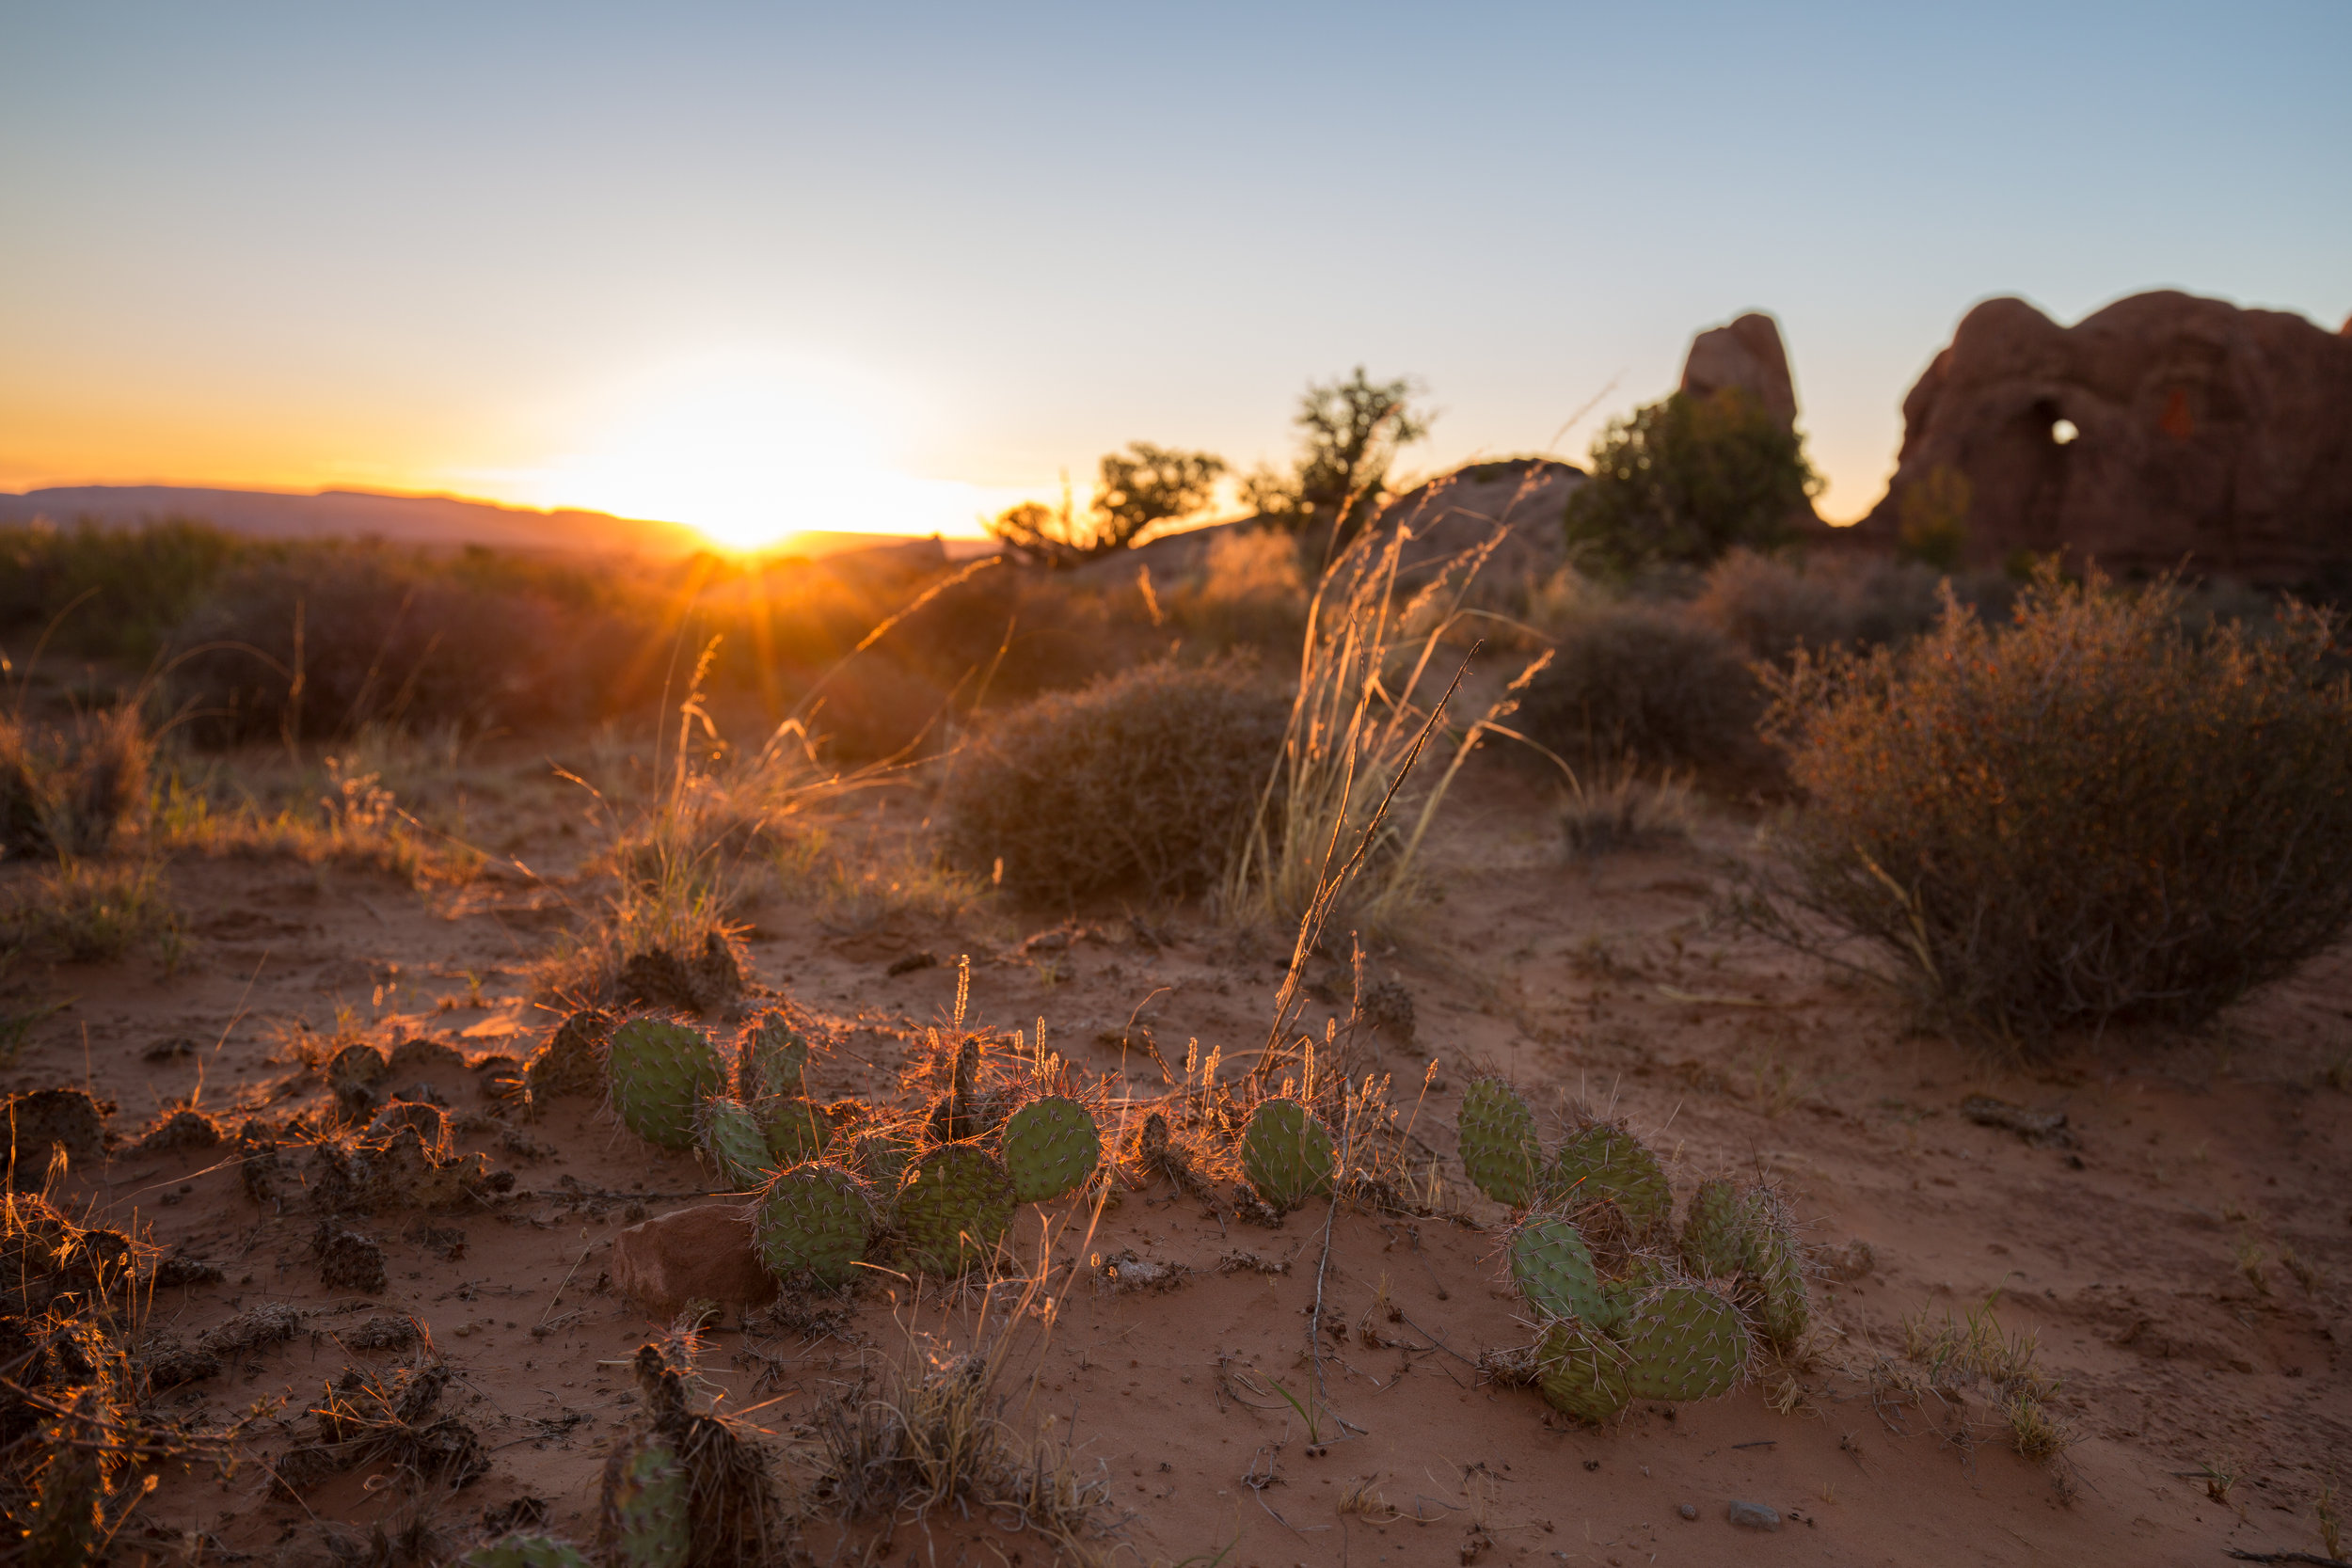 Sunset, Arches, Arches National Park, Red Rock, Utah, National Park, Travel, Get Outside, Adventure, Opt Outside, Define Fettle Travels